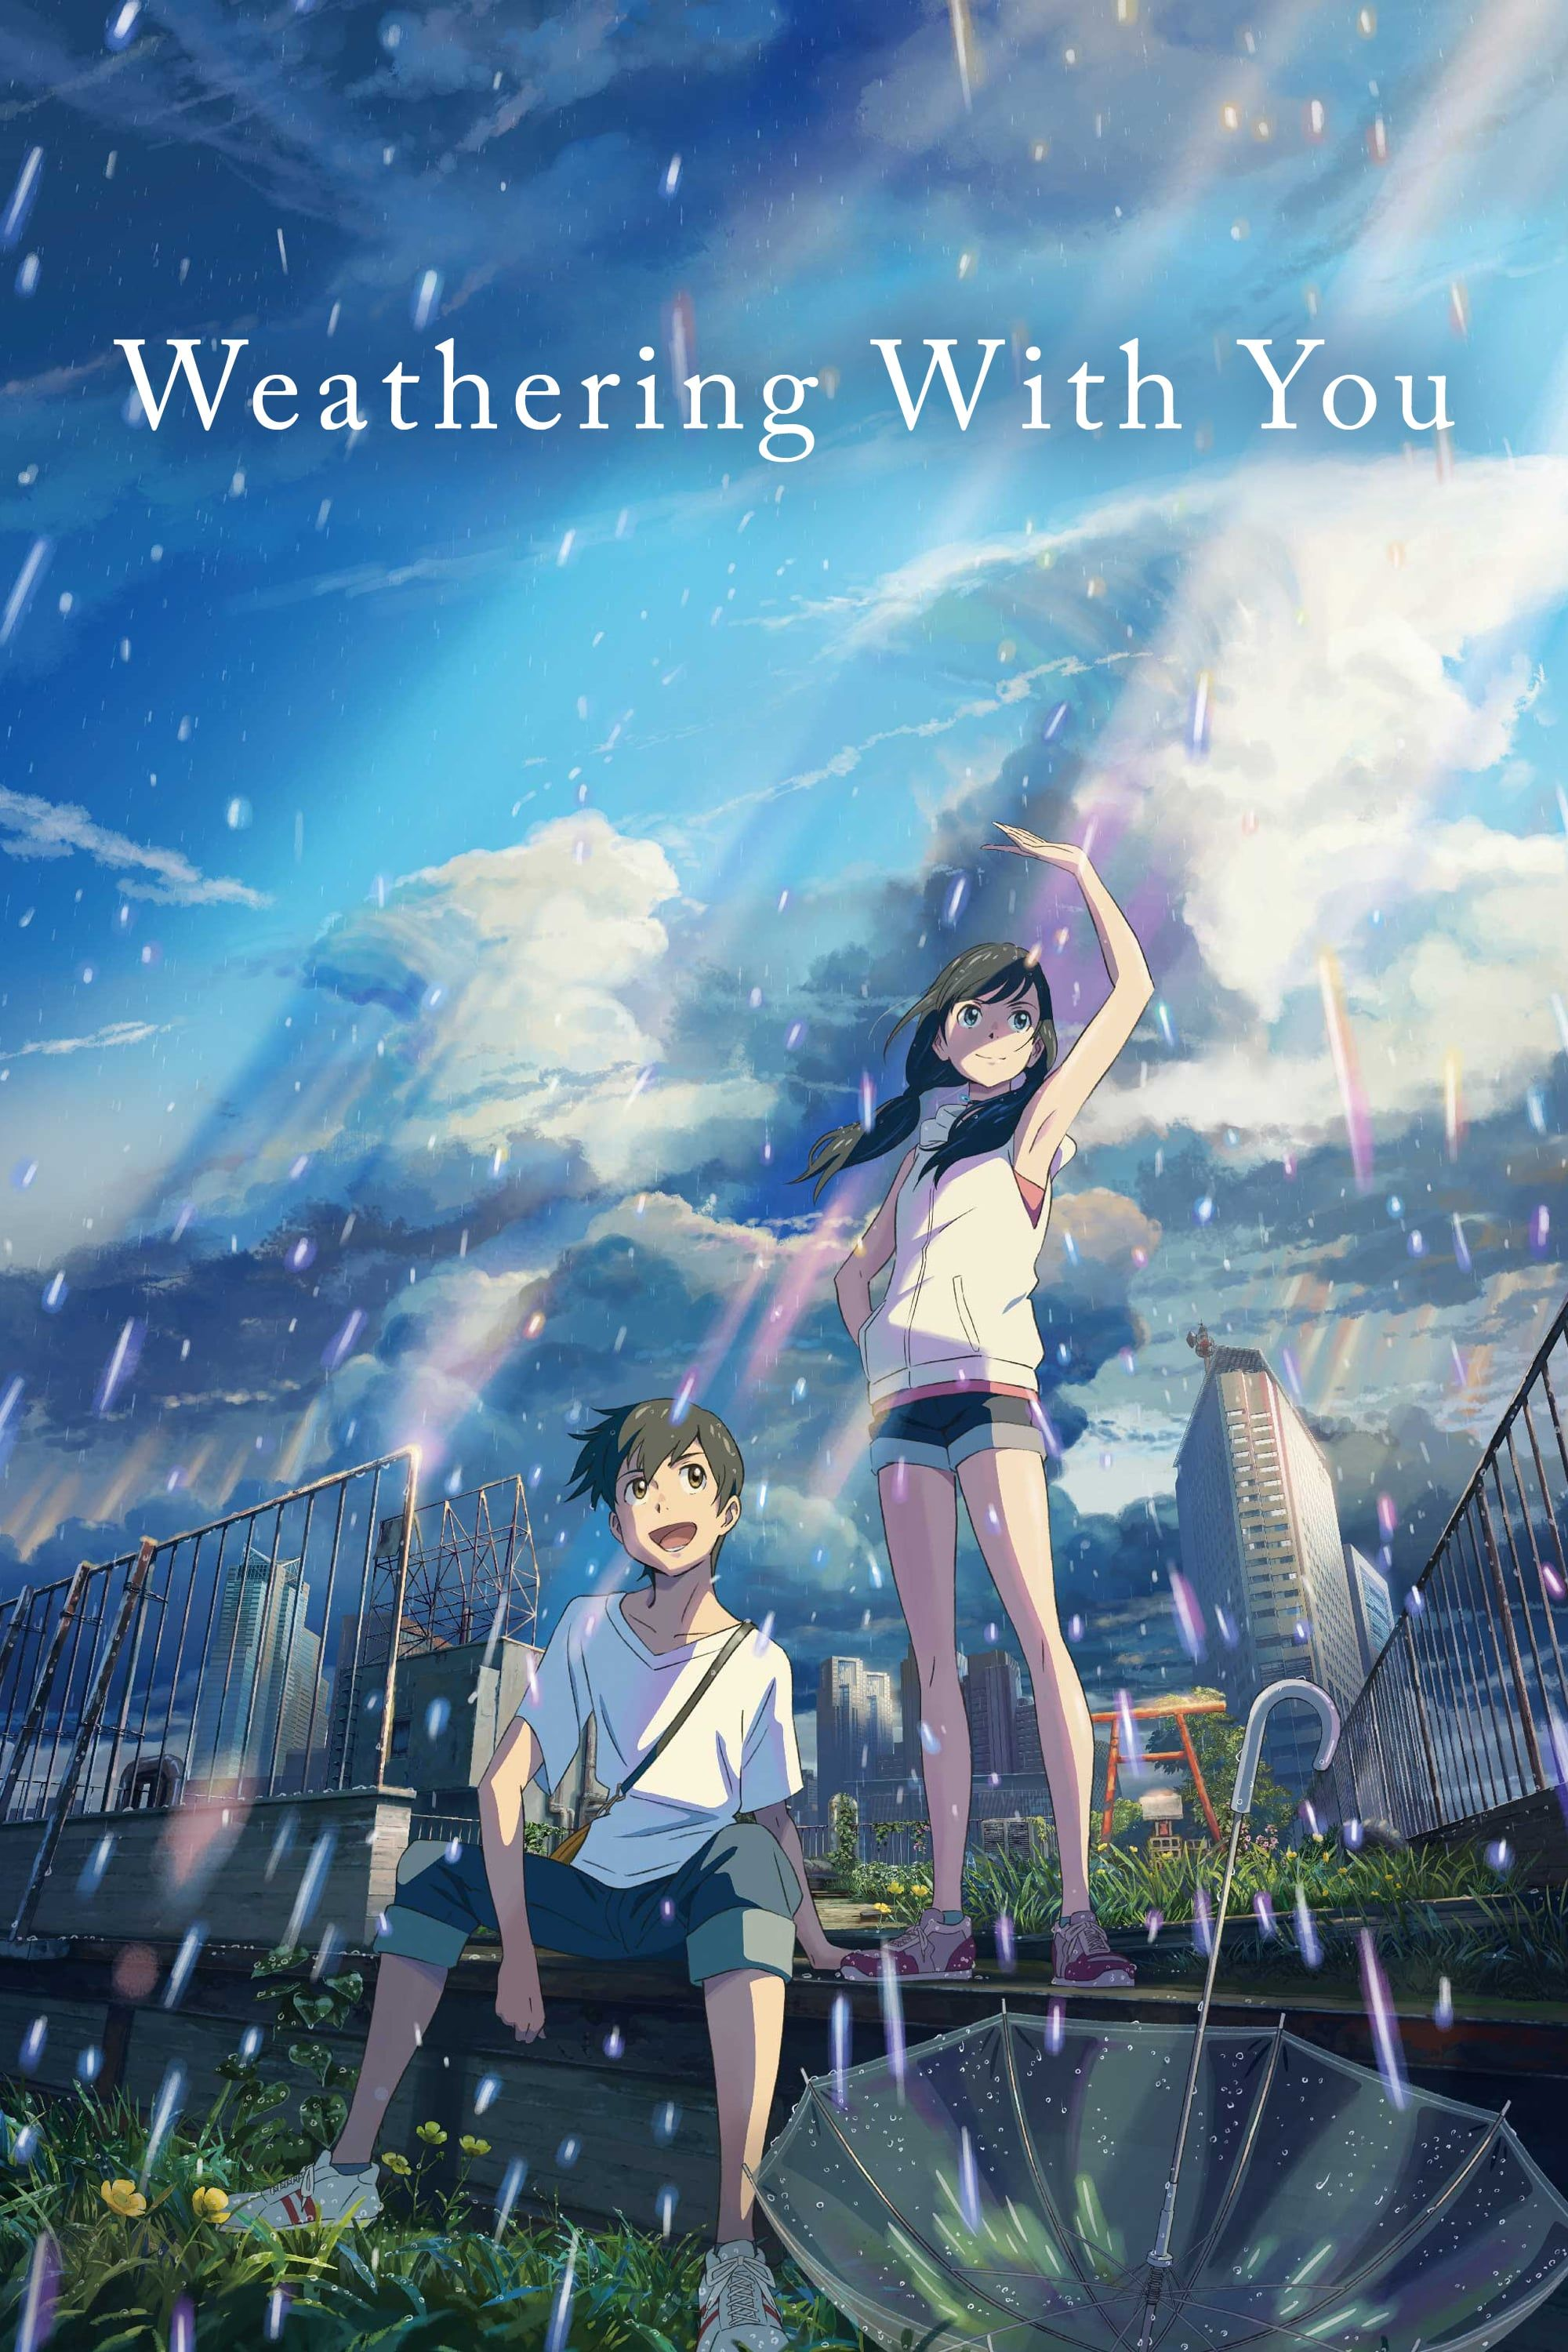 *DOWNLOAD* Weathering with You FULL MOVIE (2020) HD1080p